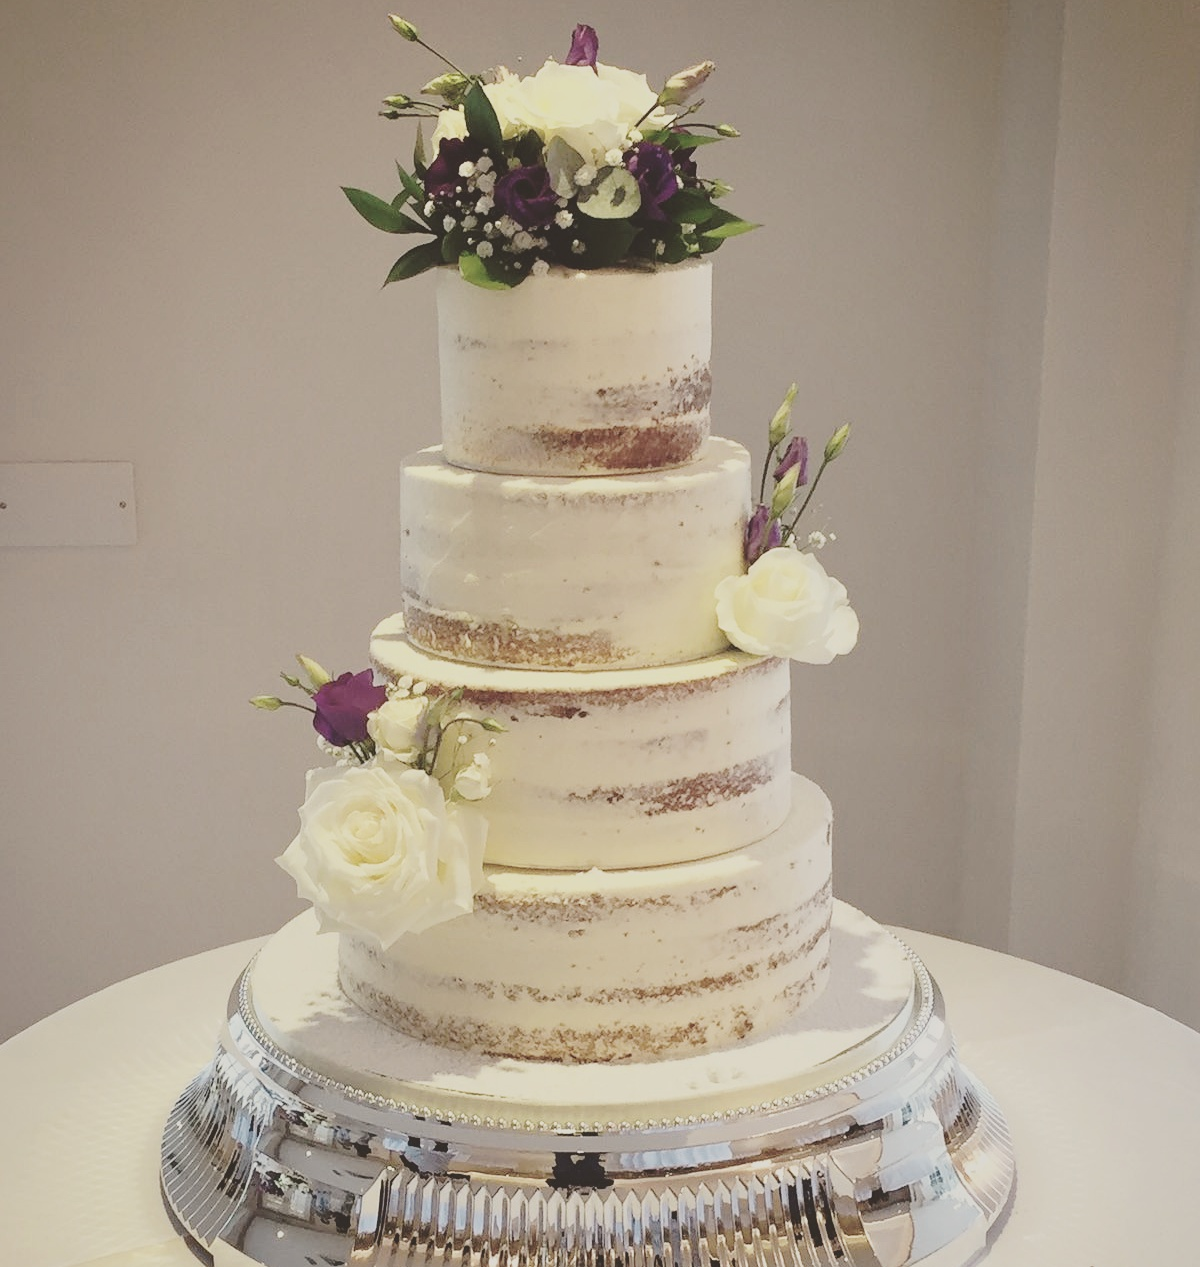 Skimmed naked cake, with vanilla buttercream and white flowers